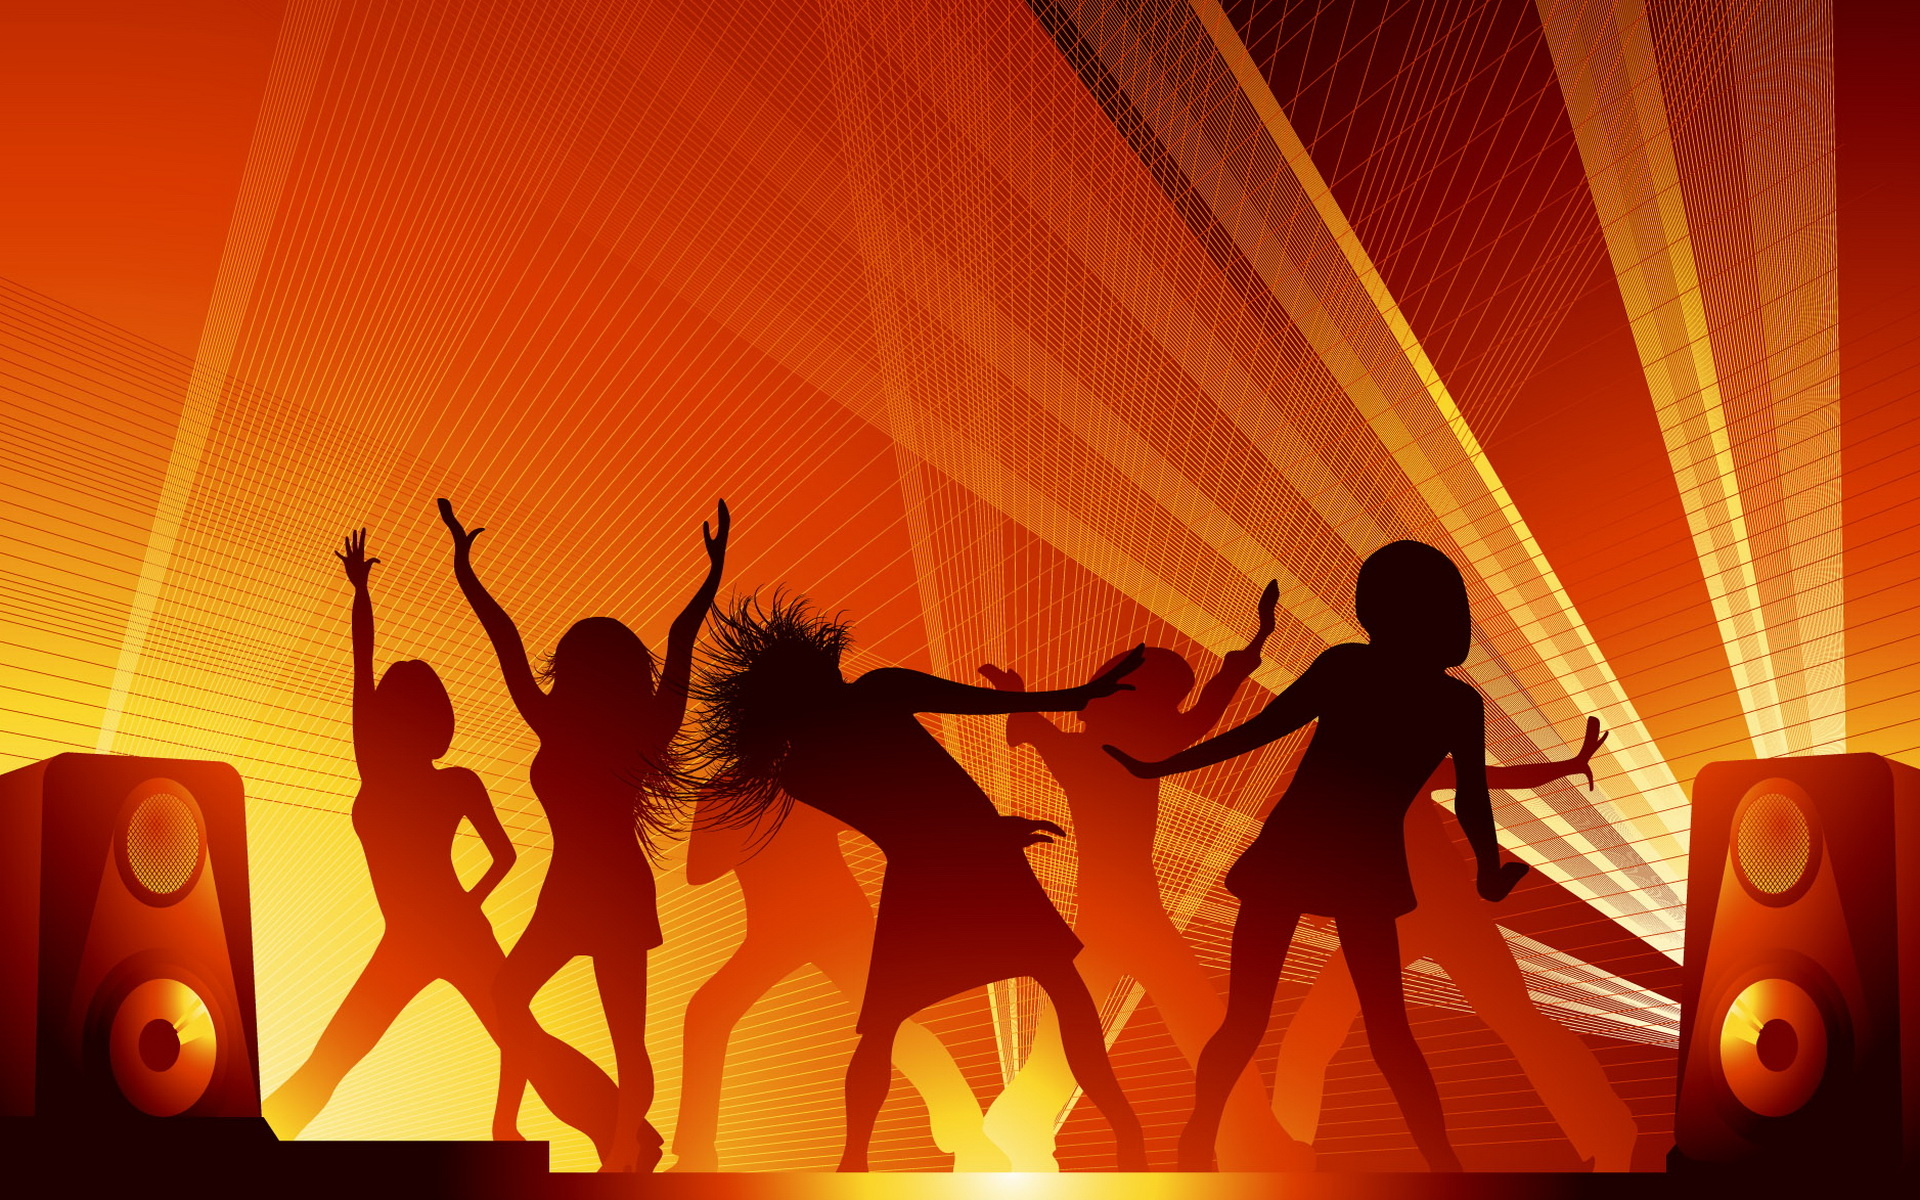 On the dance floor wallpapers and images   wallpapers pictures 1920x1200